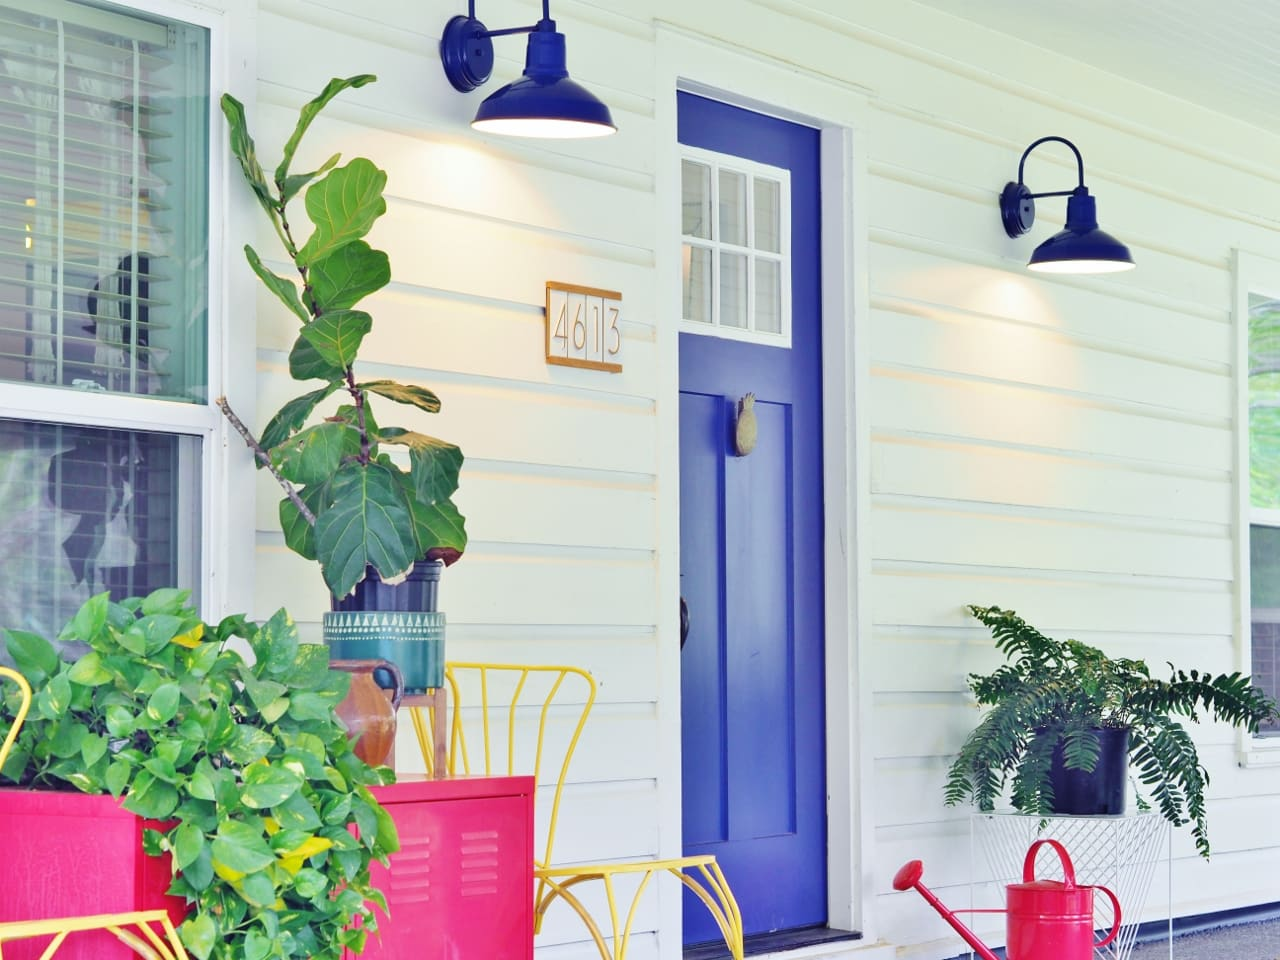 An attractive exterior paint job can work wonders for curb appeal